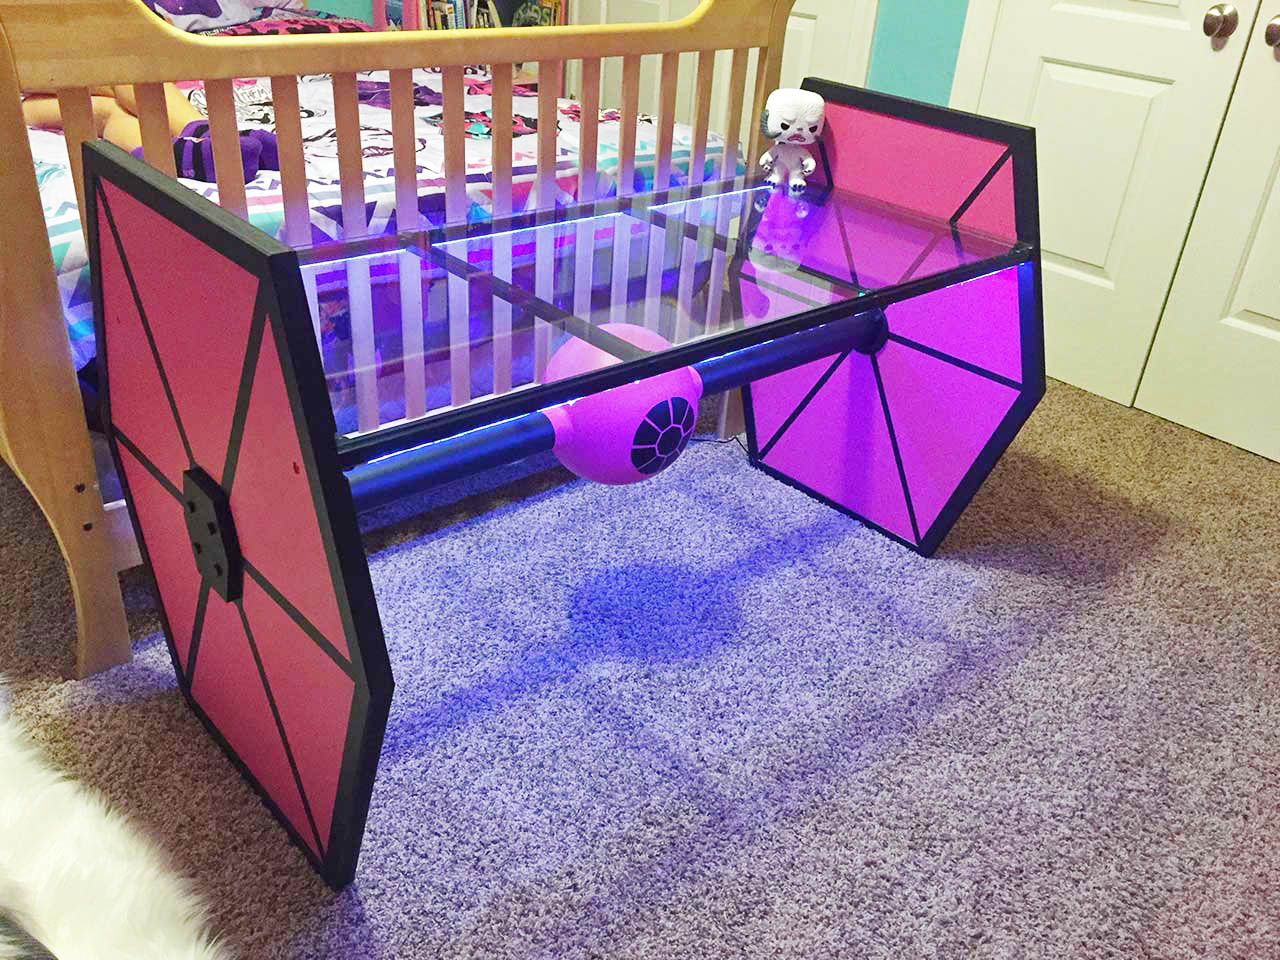 Not something you see every day, this pink tie fighter glass table is one-of-a-kind.